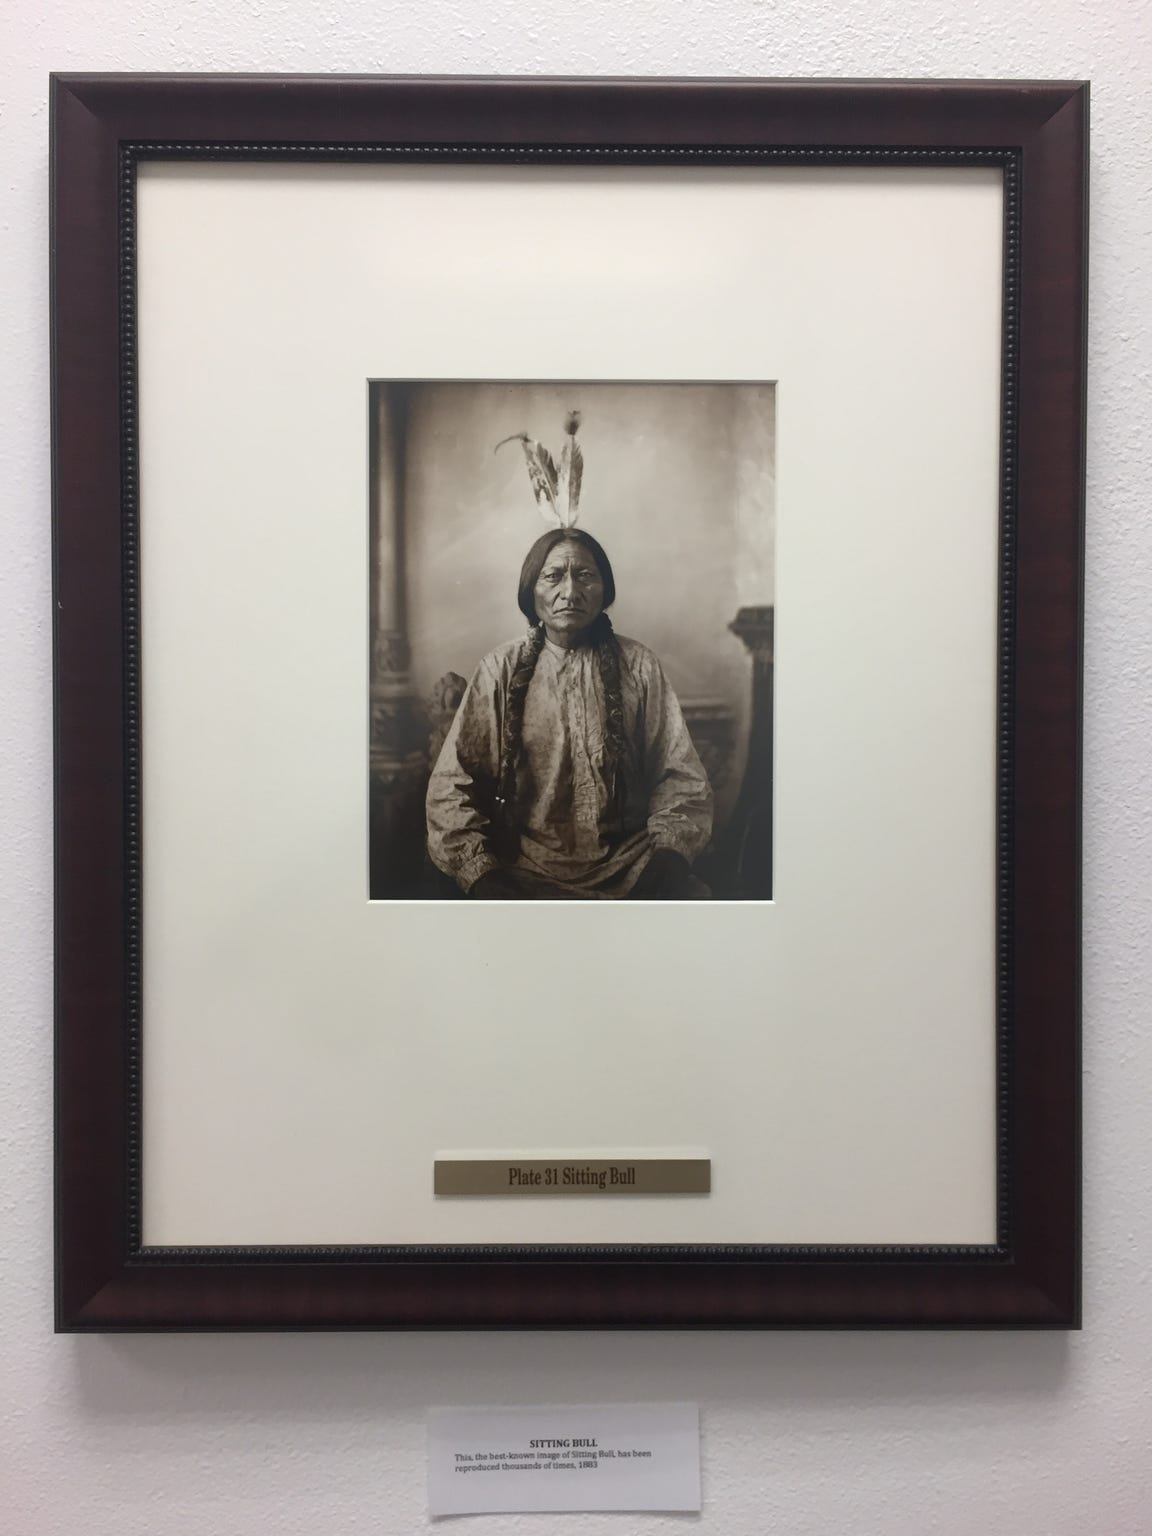 Chief Sitting Bull was a respected medicine man among his people.